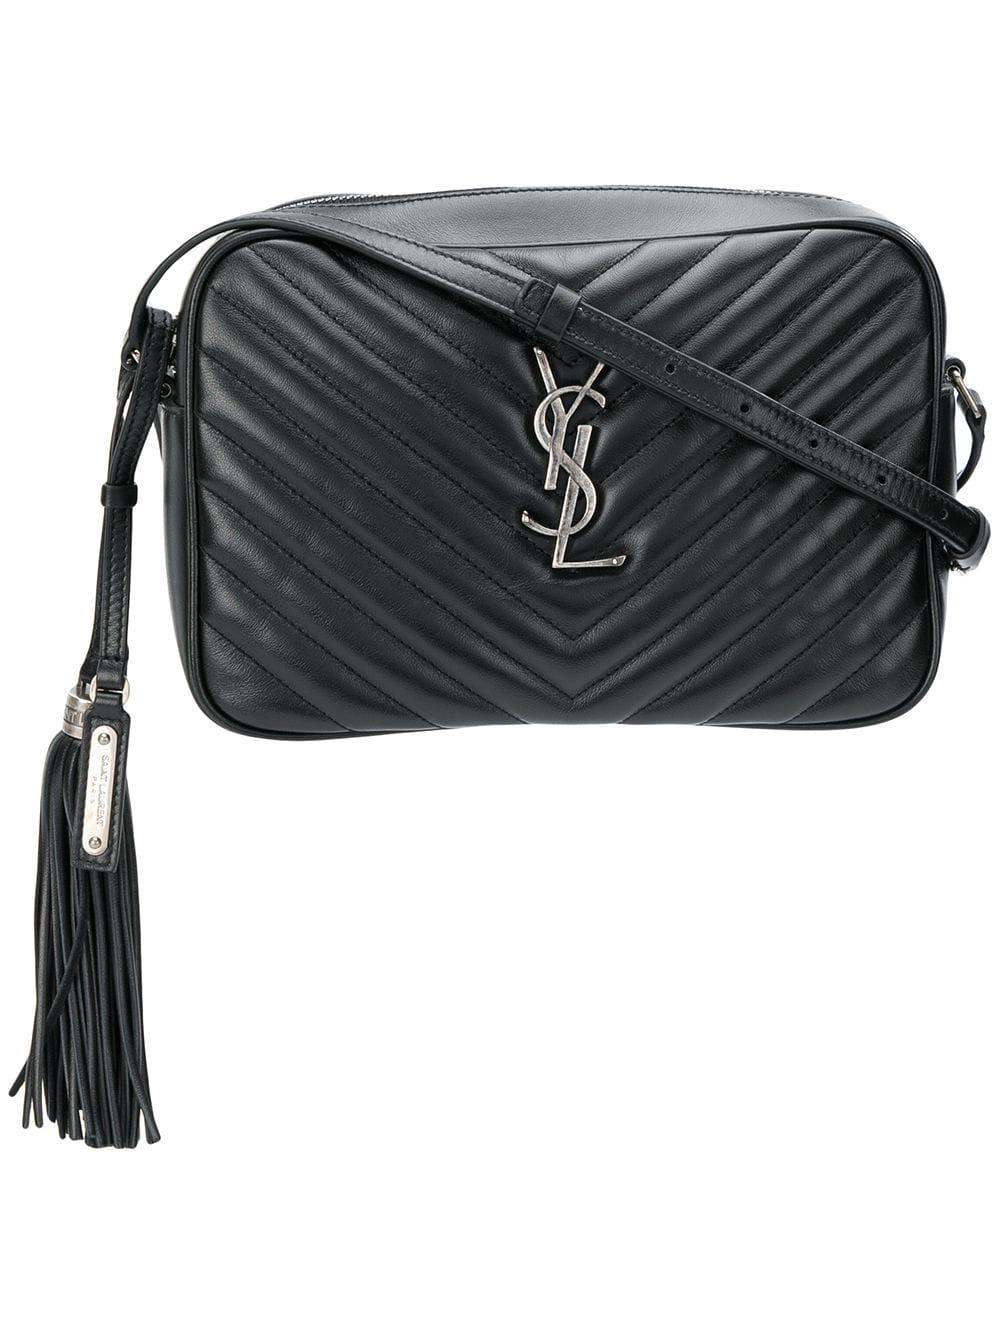 0a902e6591 Saint Laurent Loulou Small Leather Shoulder Bag in Black - Lyst